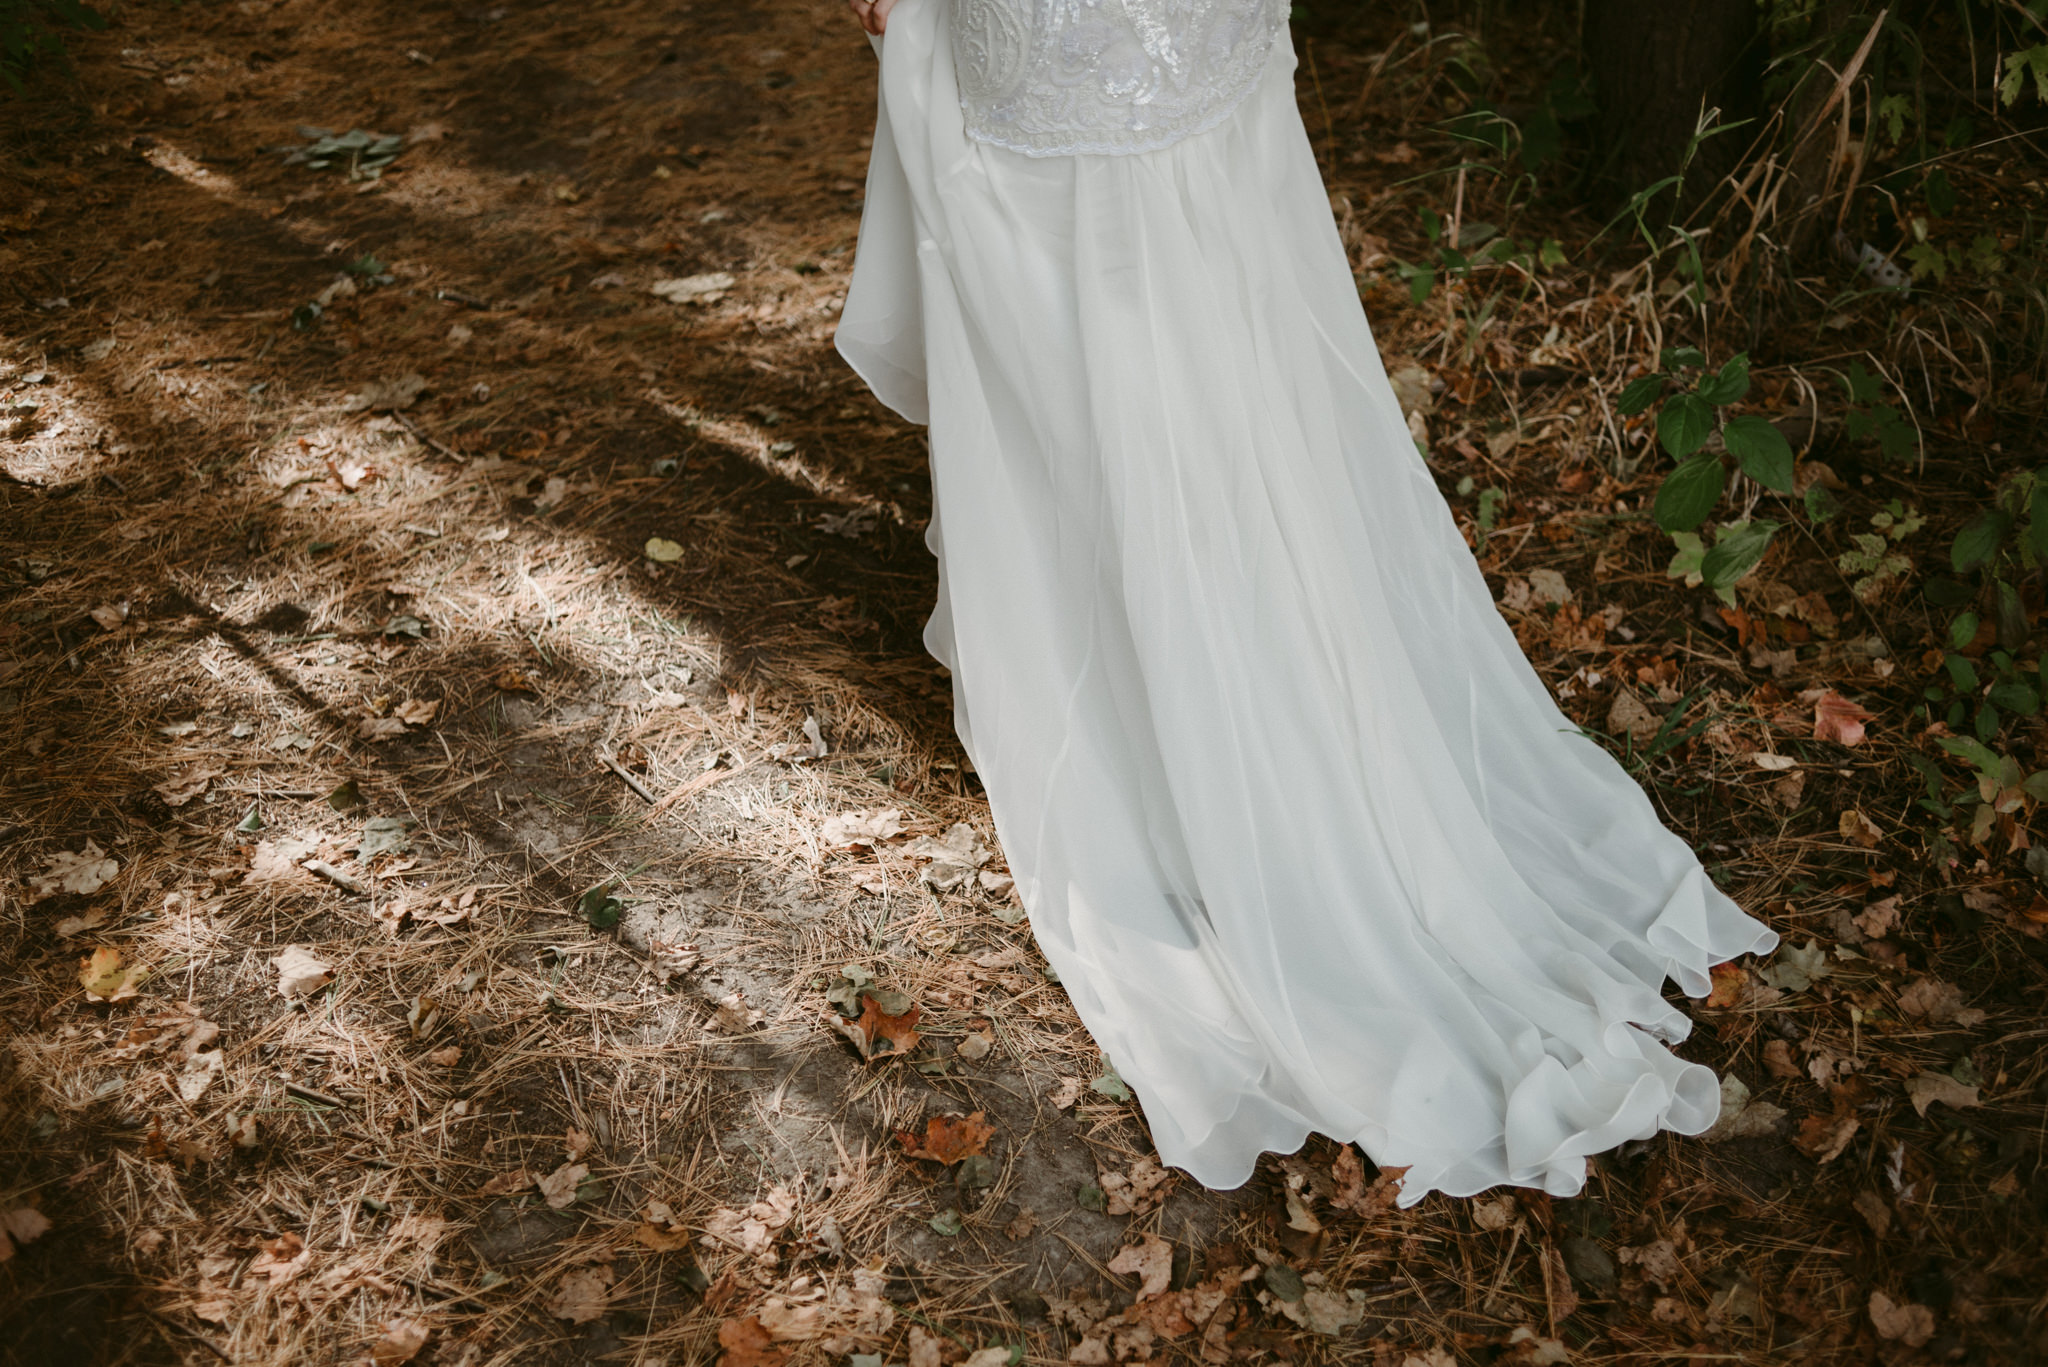 Wedding dress on forest floor